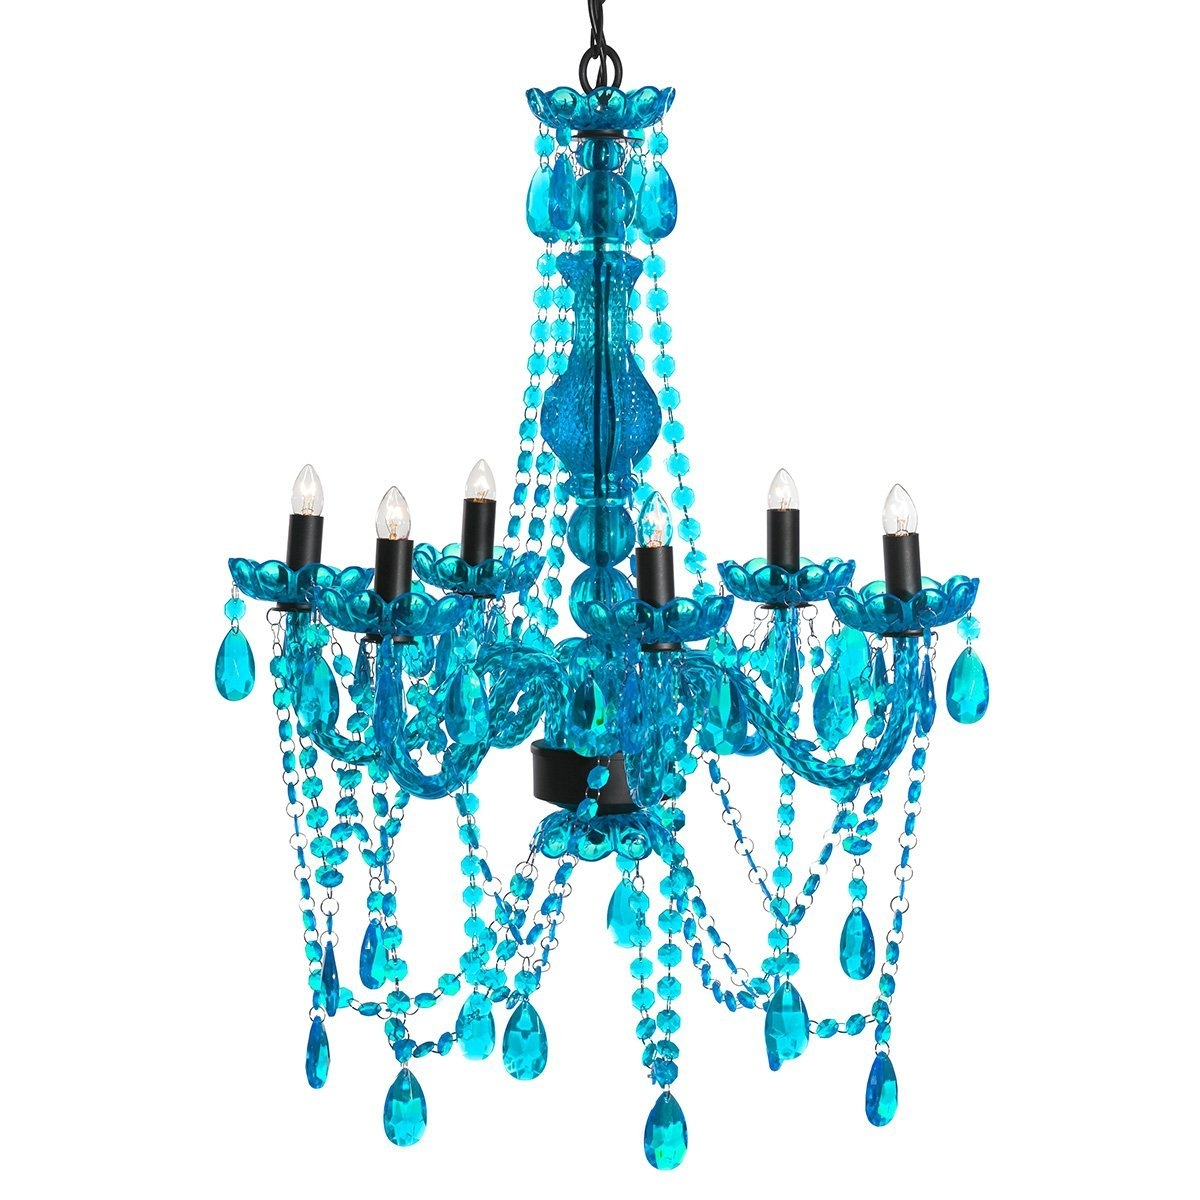 Amazon 3c4g Chandelier Turquoise Home Kitchen Within Turquoise Chandelier Lights (Image 4 of 25)